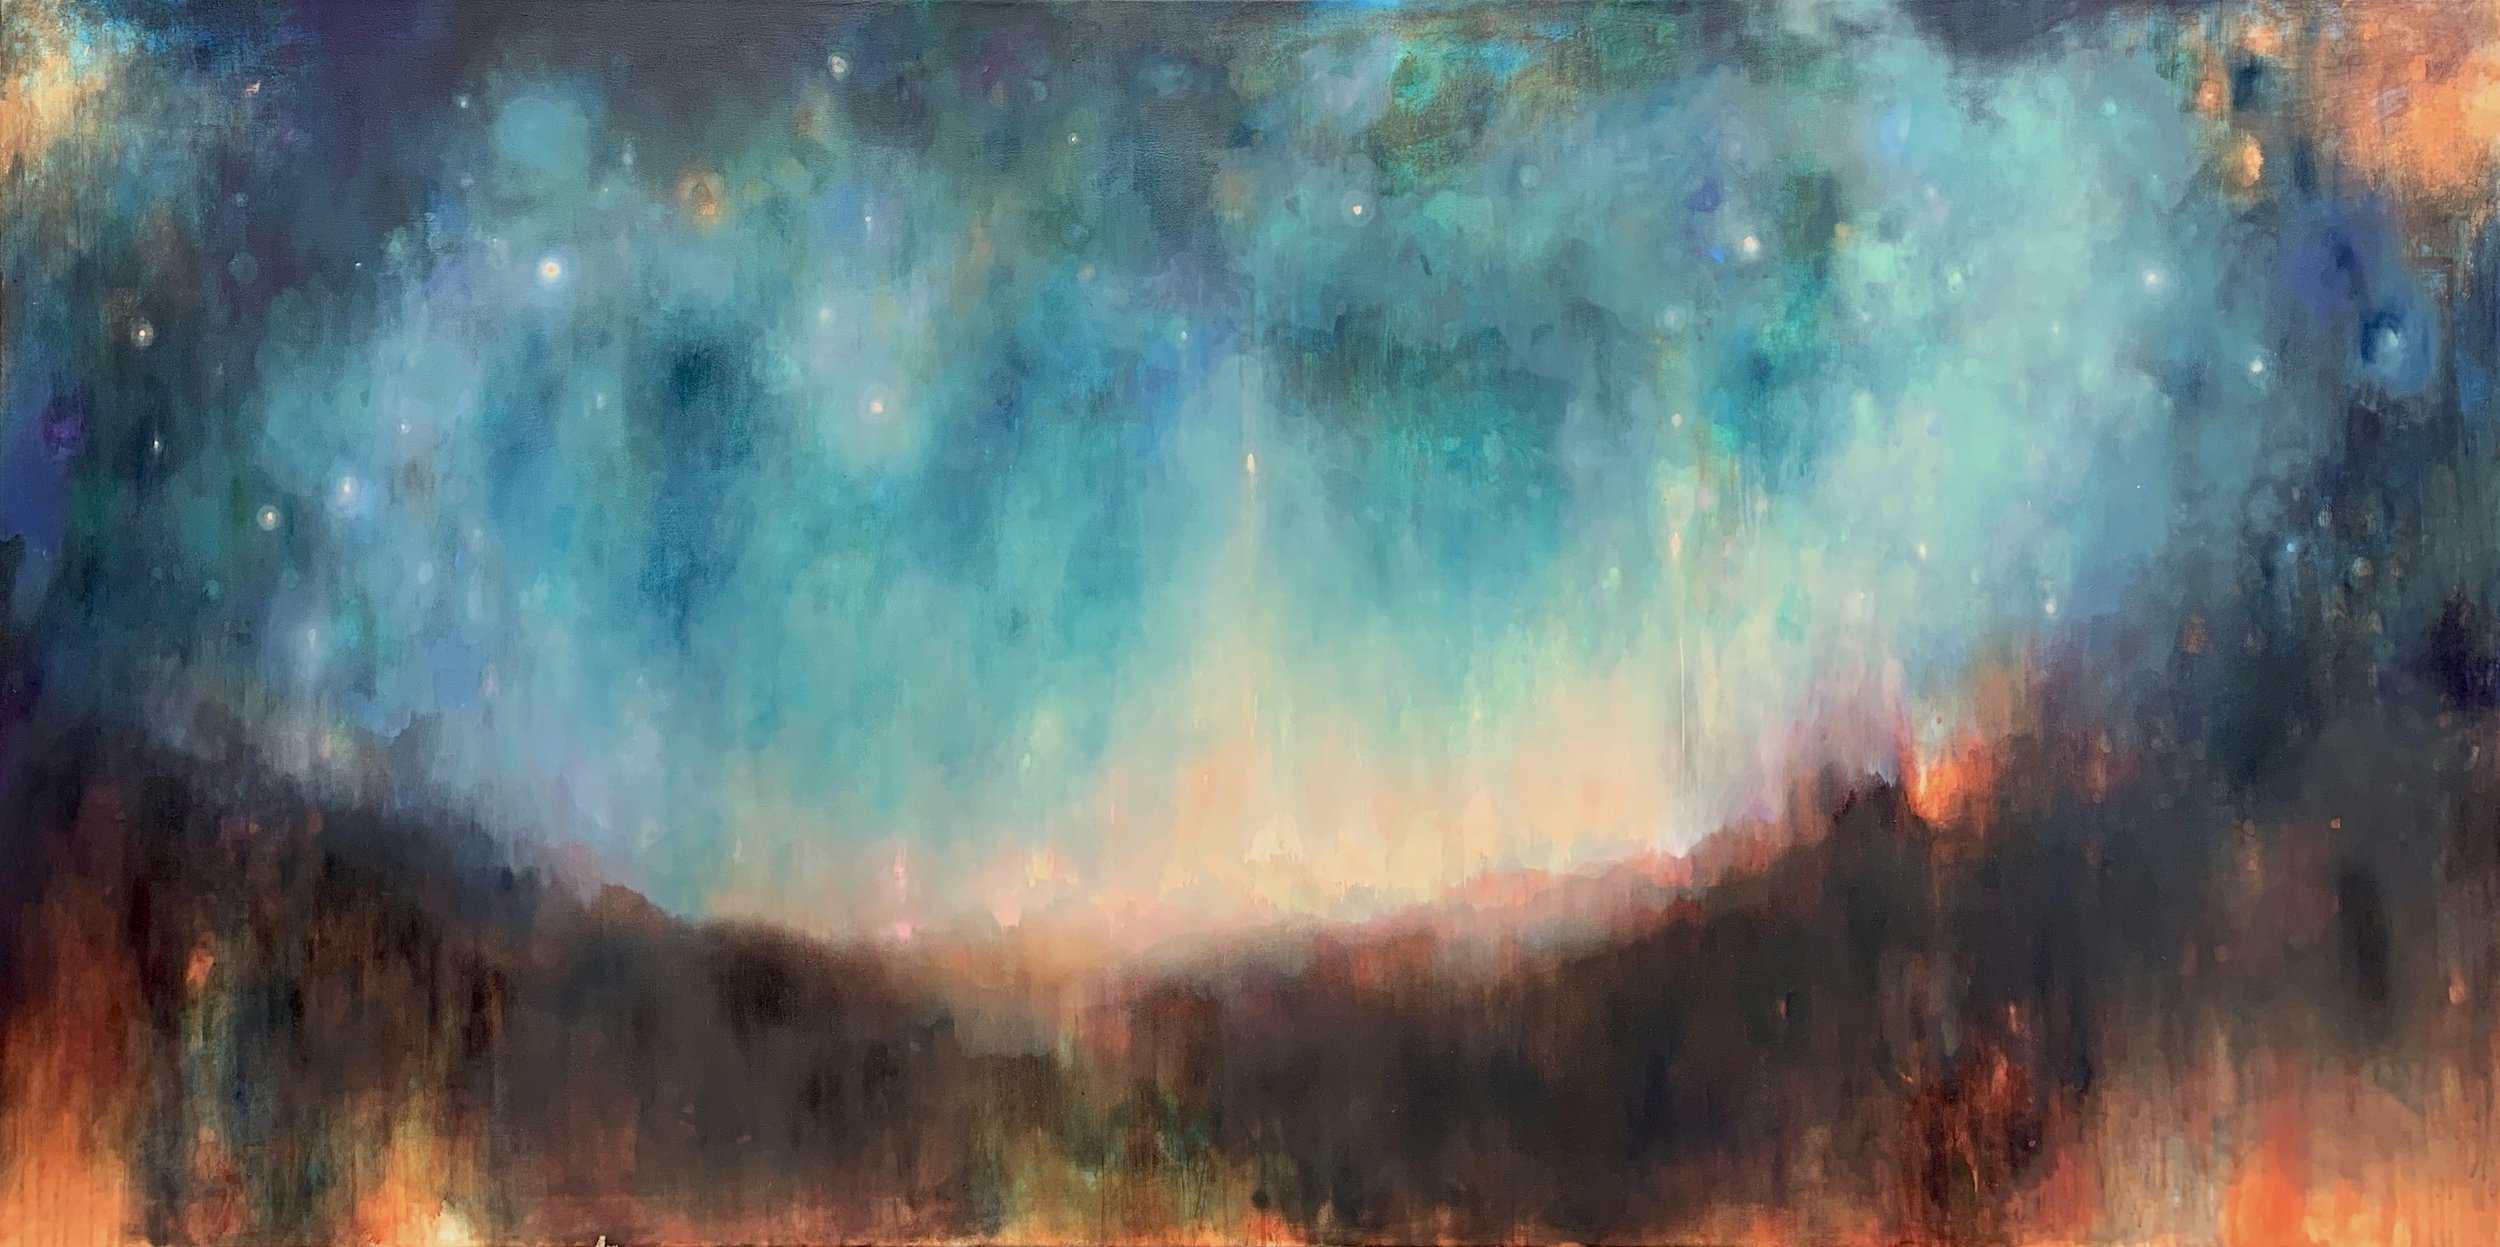 Clare Doveton, This Vast Night, oil on canvas, 48x96 inches, price upon request